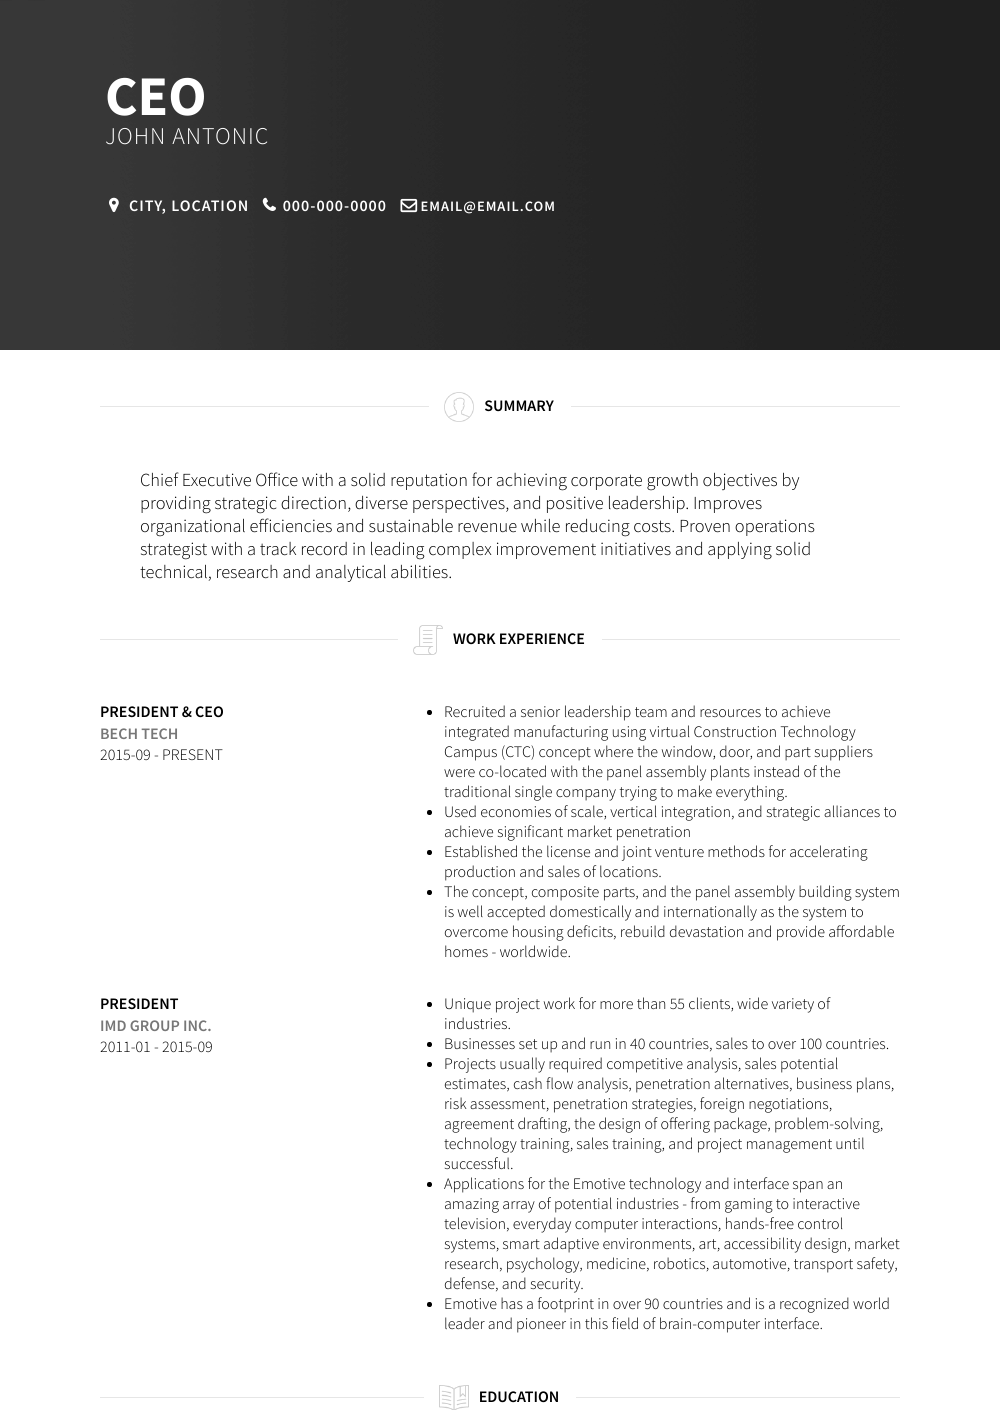 CEO Resume Sample and Template